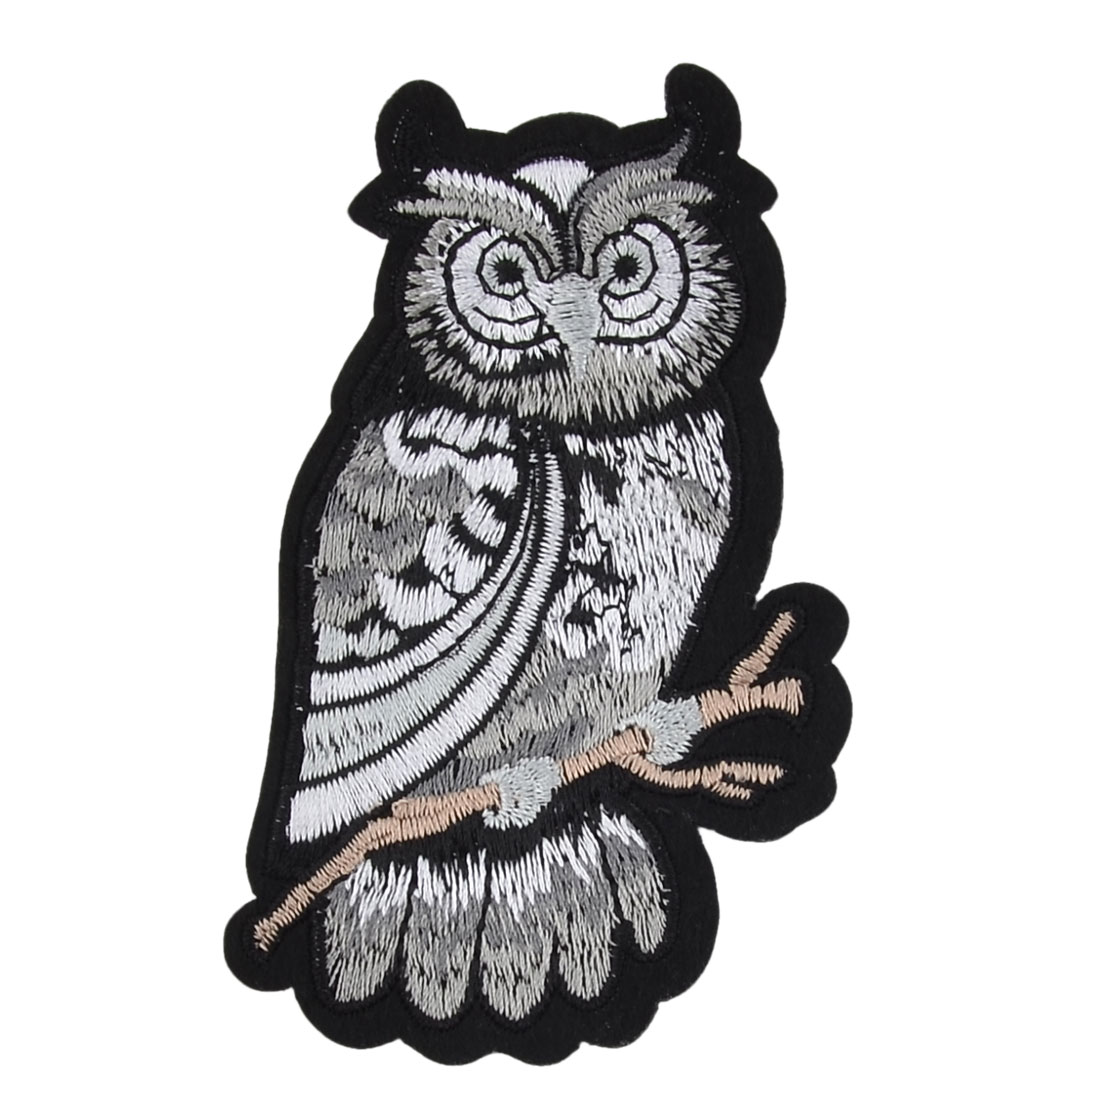 Unique Bargains Polyester Owl Design DIY Sewing Trimming Hag Decorative Lace Applique Black